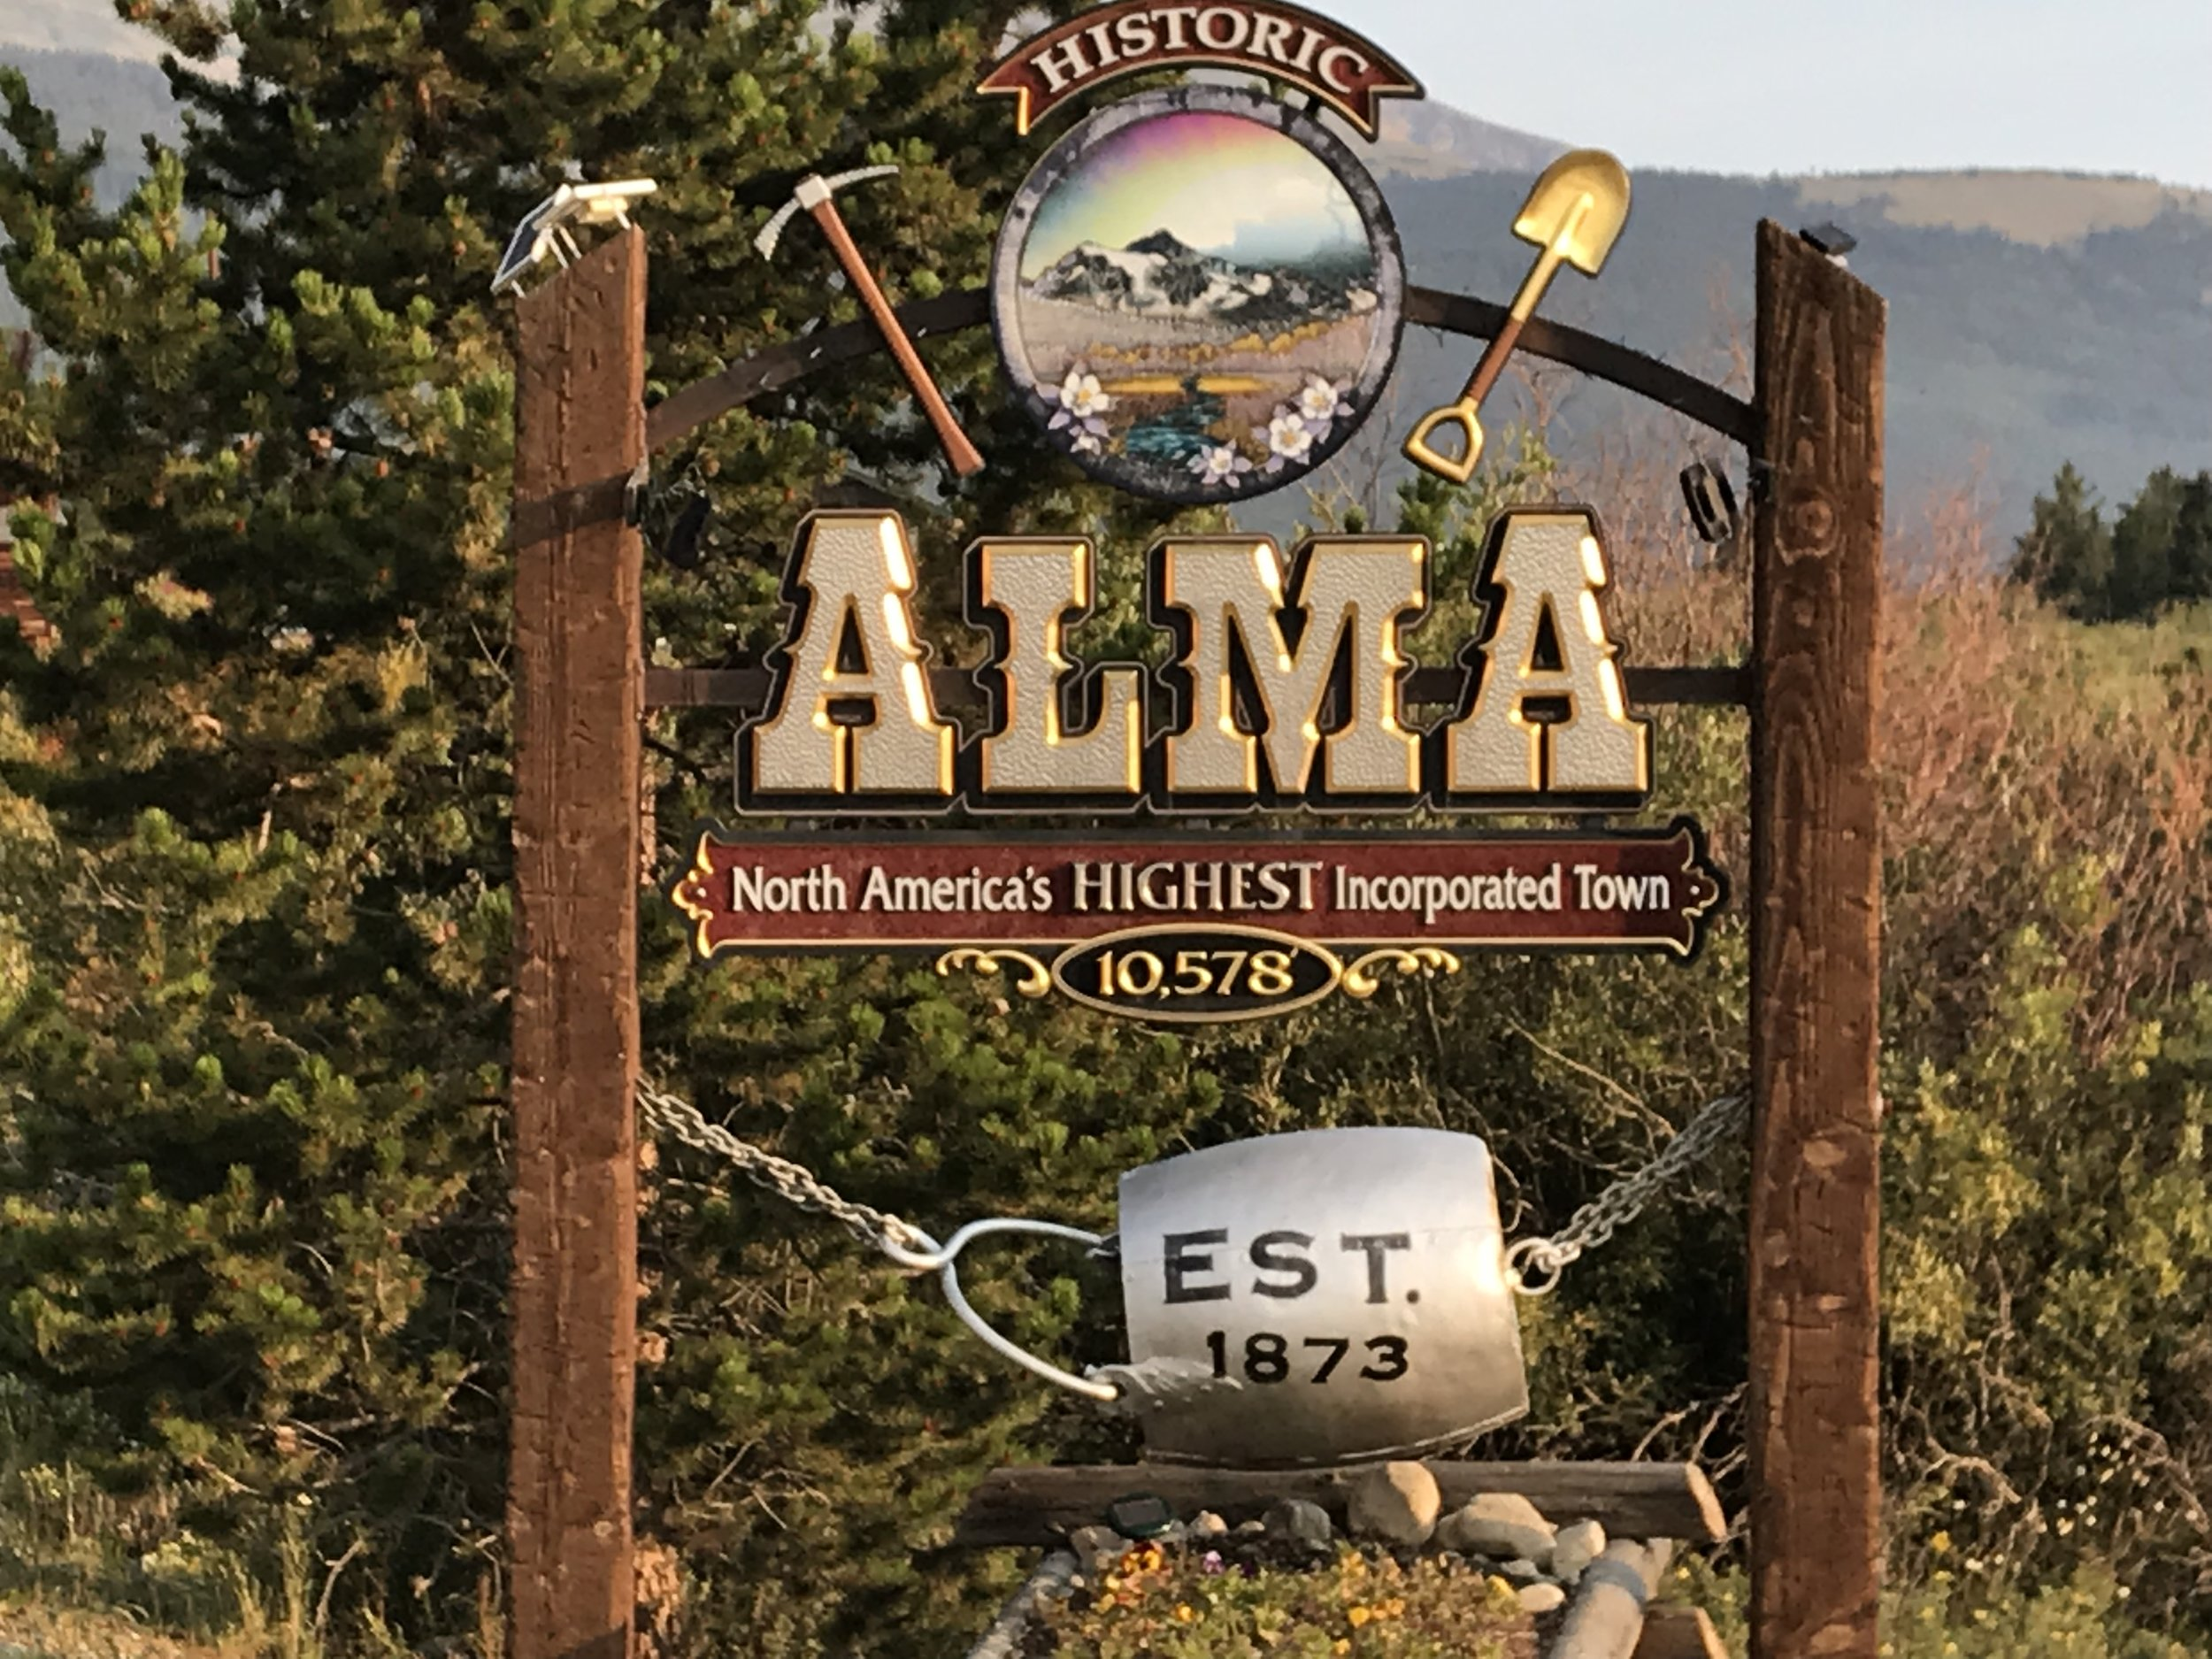 And on our way to Hoosier Pass, we pedaled through the town of Alma (highest incorporated town in North America-see sign), where we also picked up some instant hand warmers for the boys.